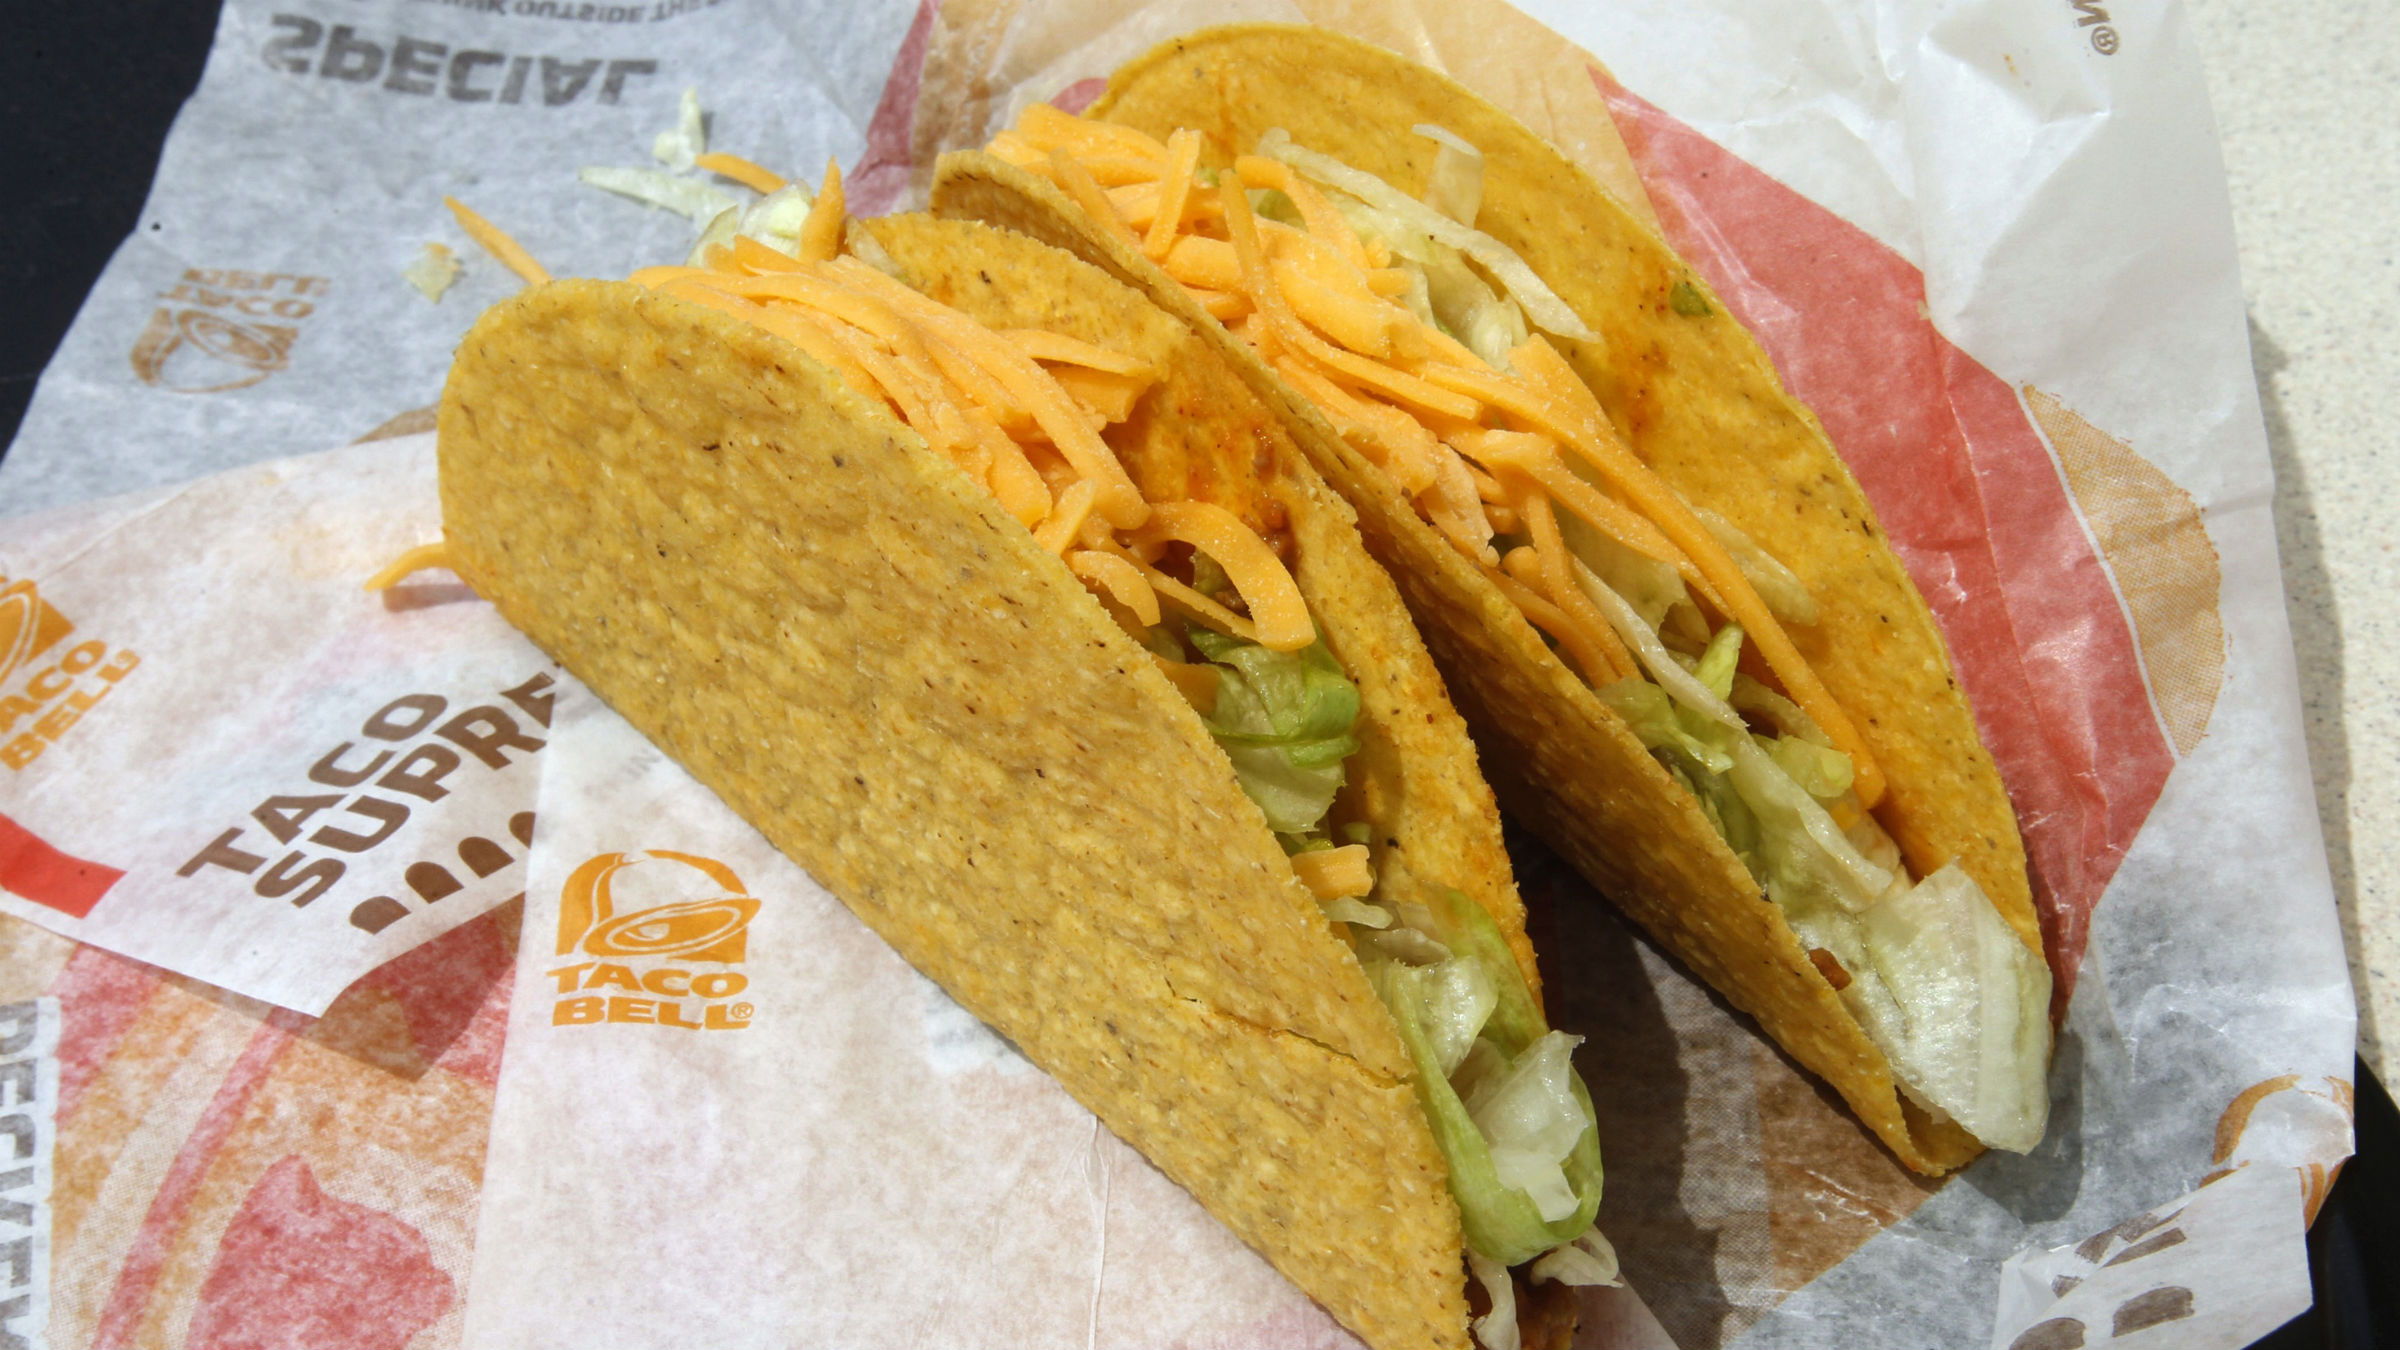 Two crunchy tacos are pictured at a Taco Bell restaurant in Glendale, California April 19, 2011. Taco Bell is part of Yum! Brands, the world's largest company of system restaurants, including Pizza Hut, Taco Bell, and KFC. Yum! Brands releases earnings April 20.